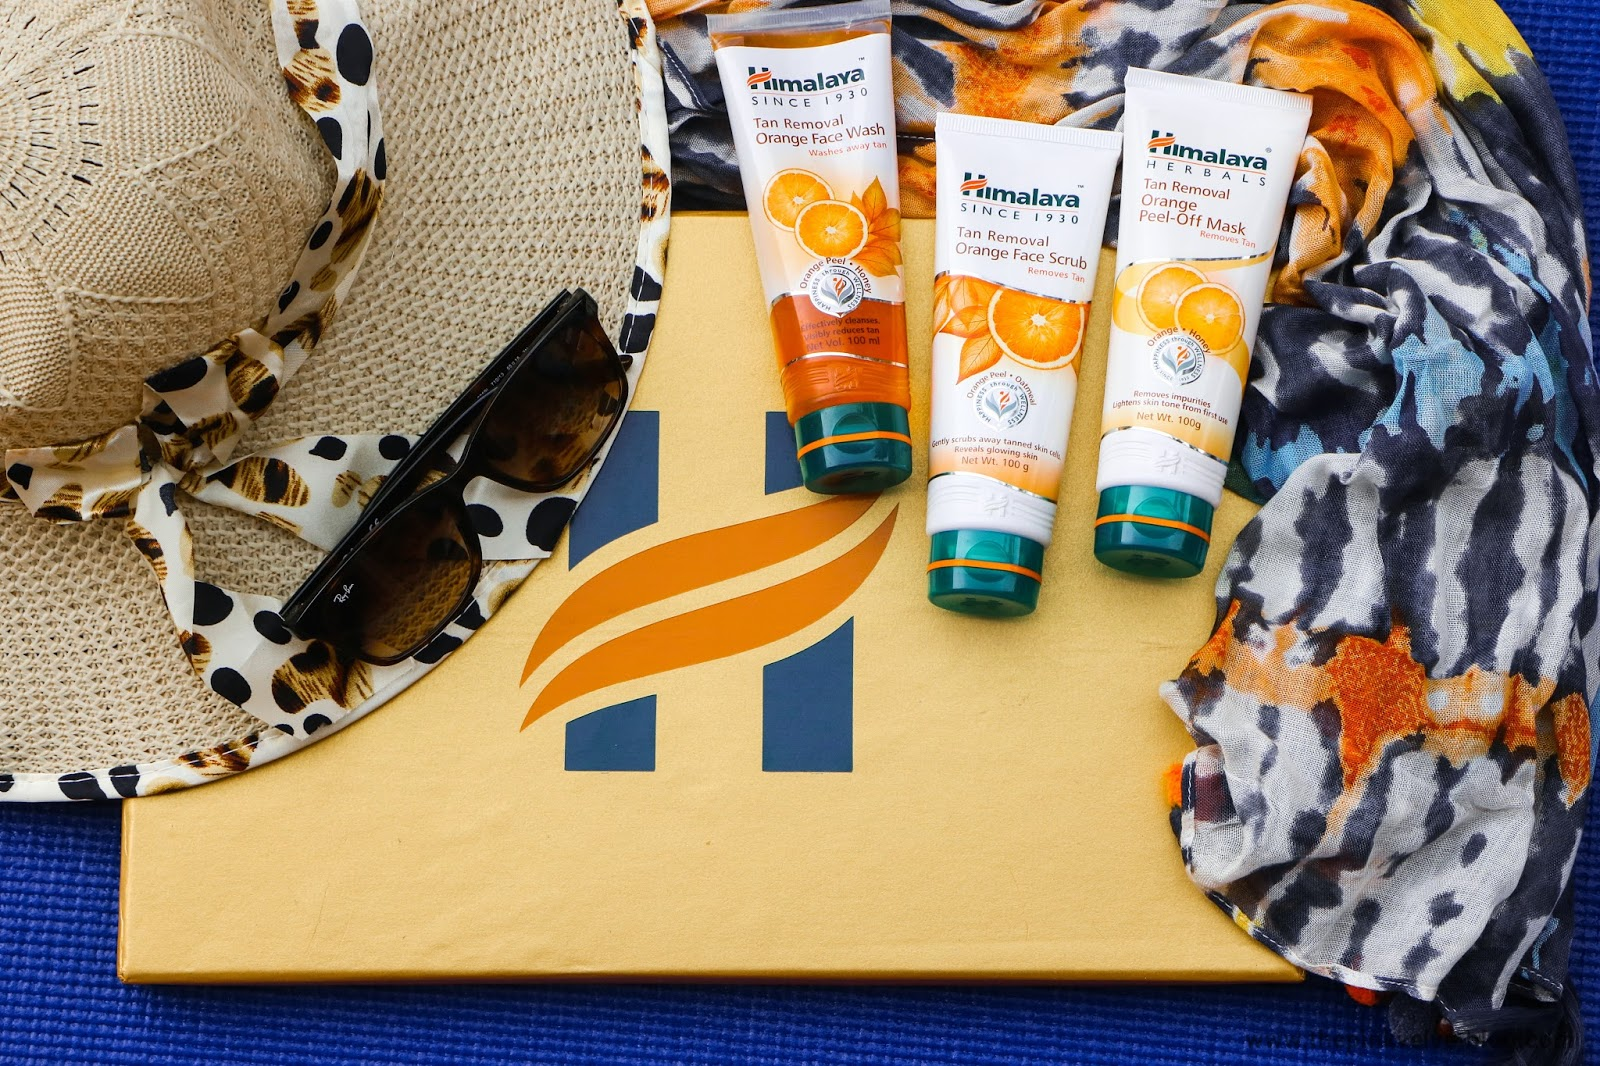 Himalaya Herbals Orange Tan Removal Range